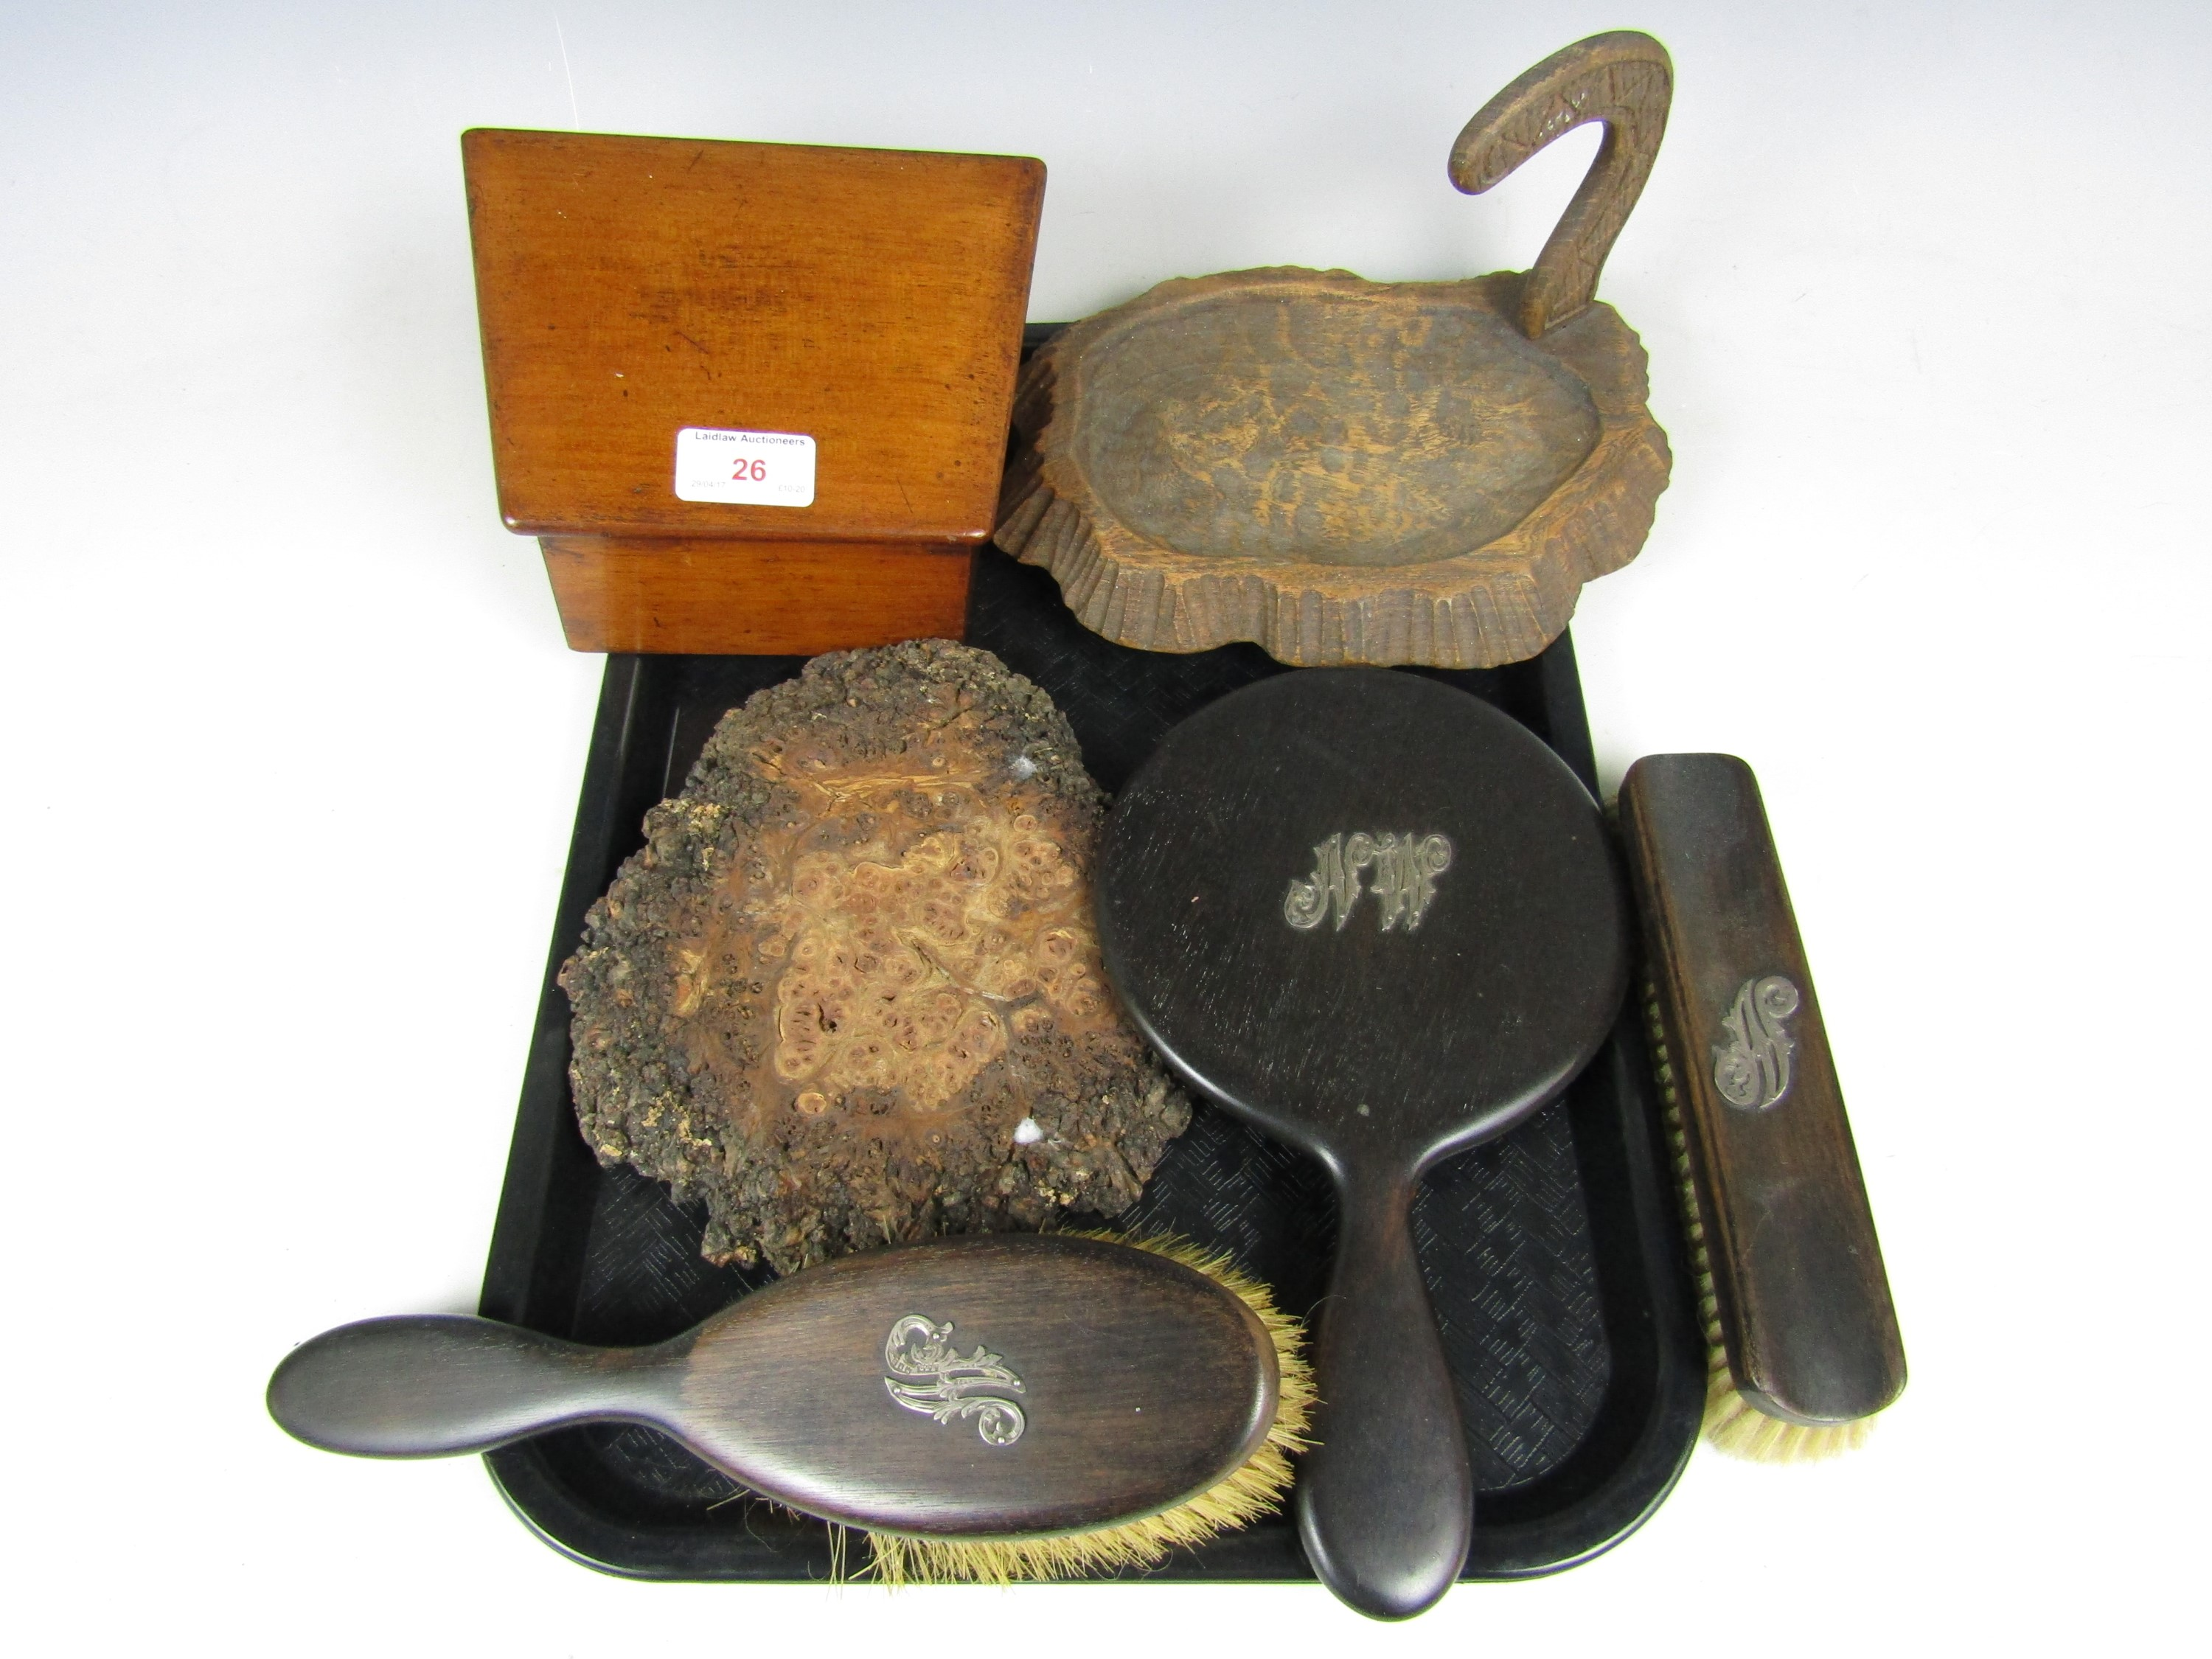 Lot 26 - A wooden stationary box together with a hand mirror and brush set etc.